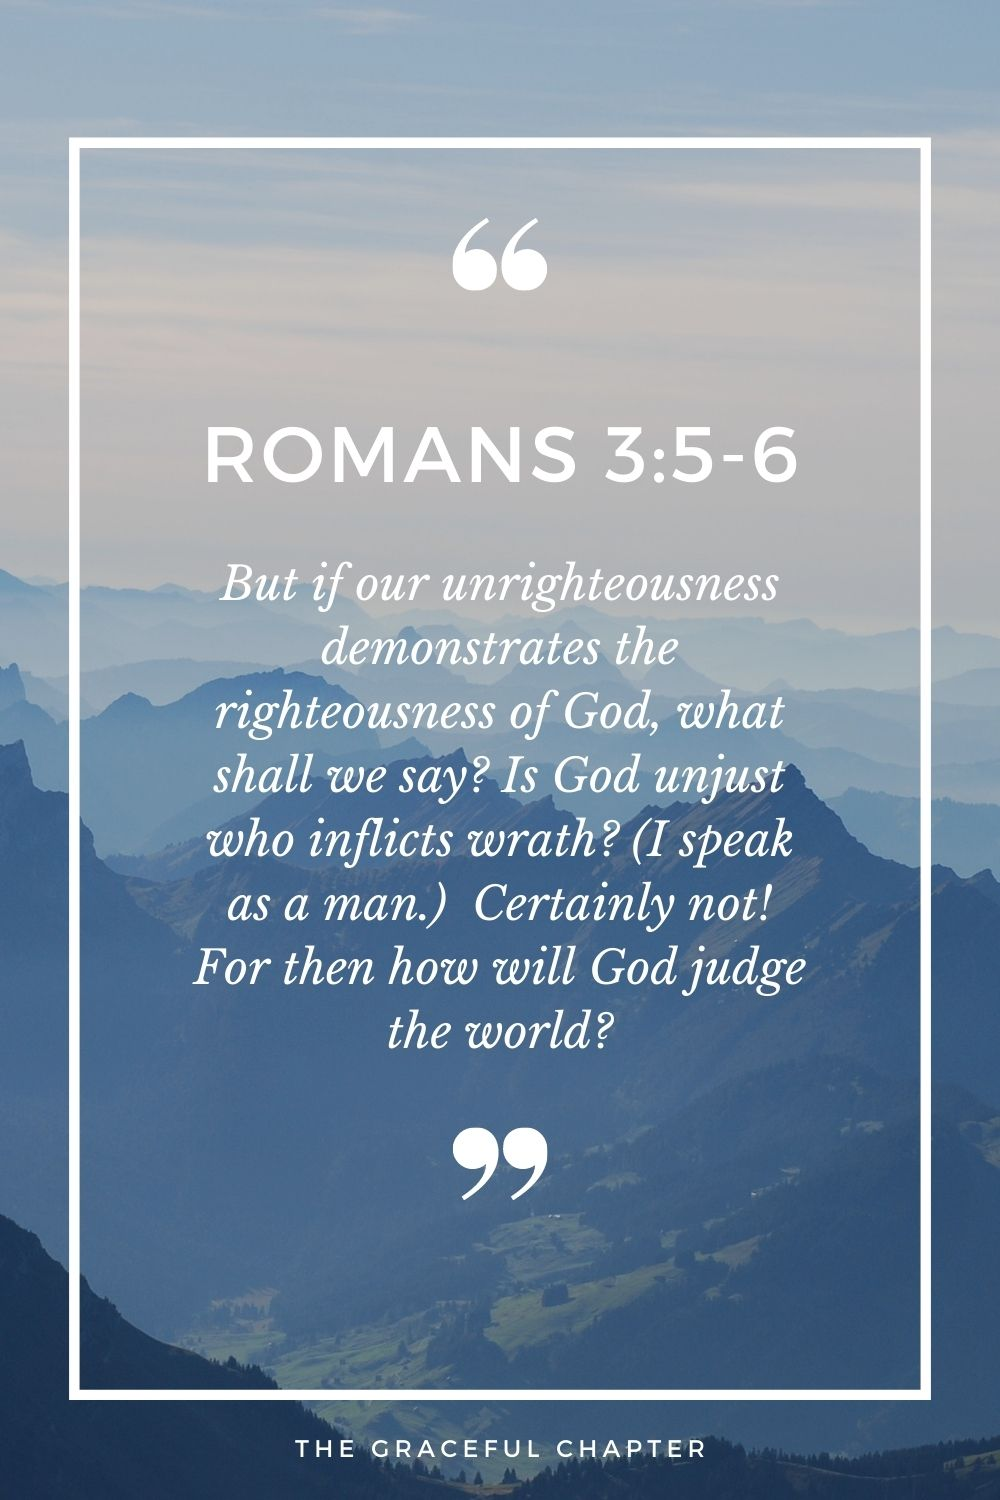 But if our unrighteousness demonstrates the righteousness of God, what shall we say? Is God unjust who inflicts wrath? (I speak as a man.)  Certainly not! For then how will God judge the world? Romans 3:5-6